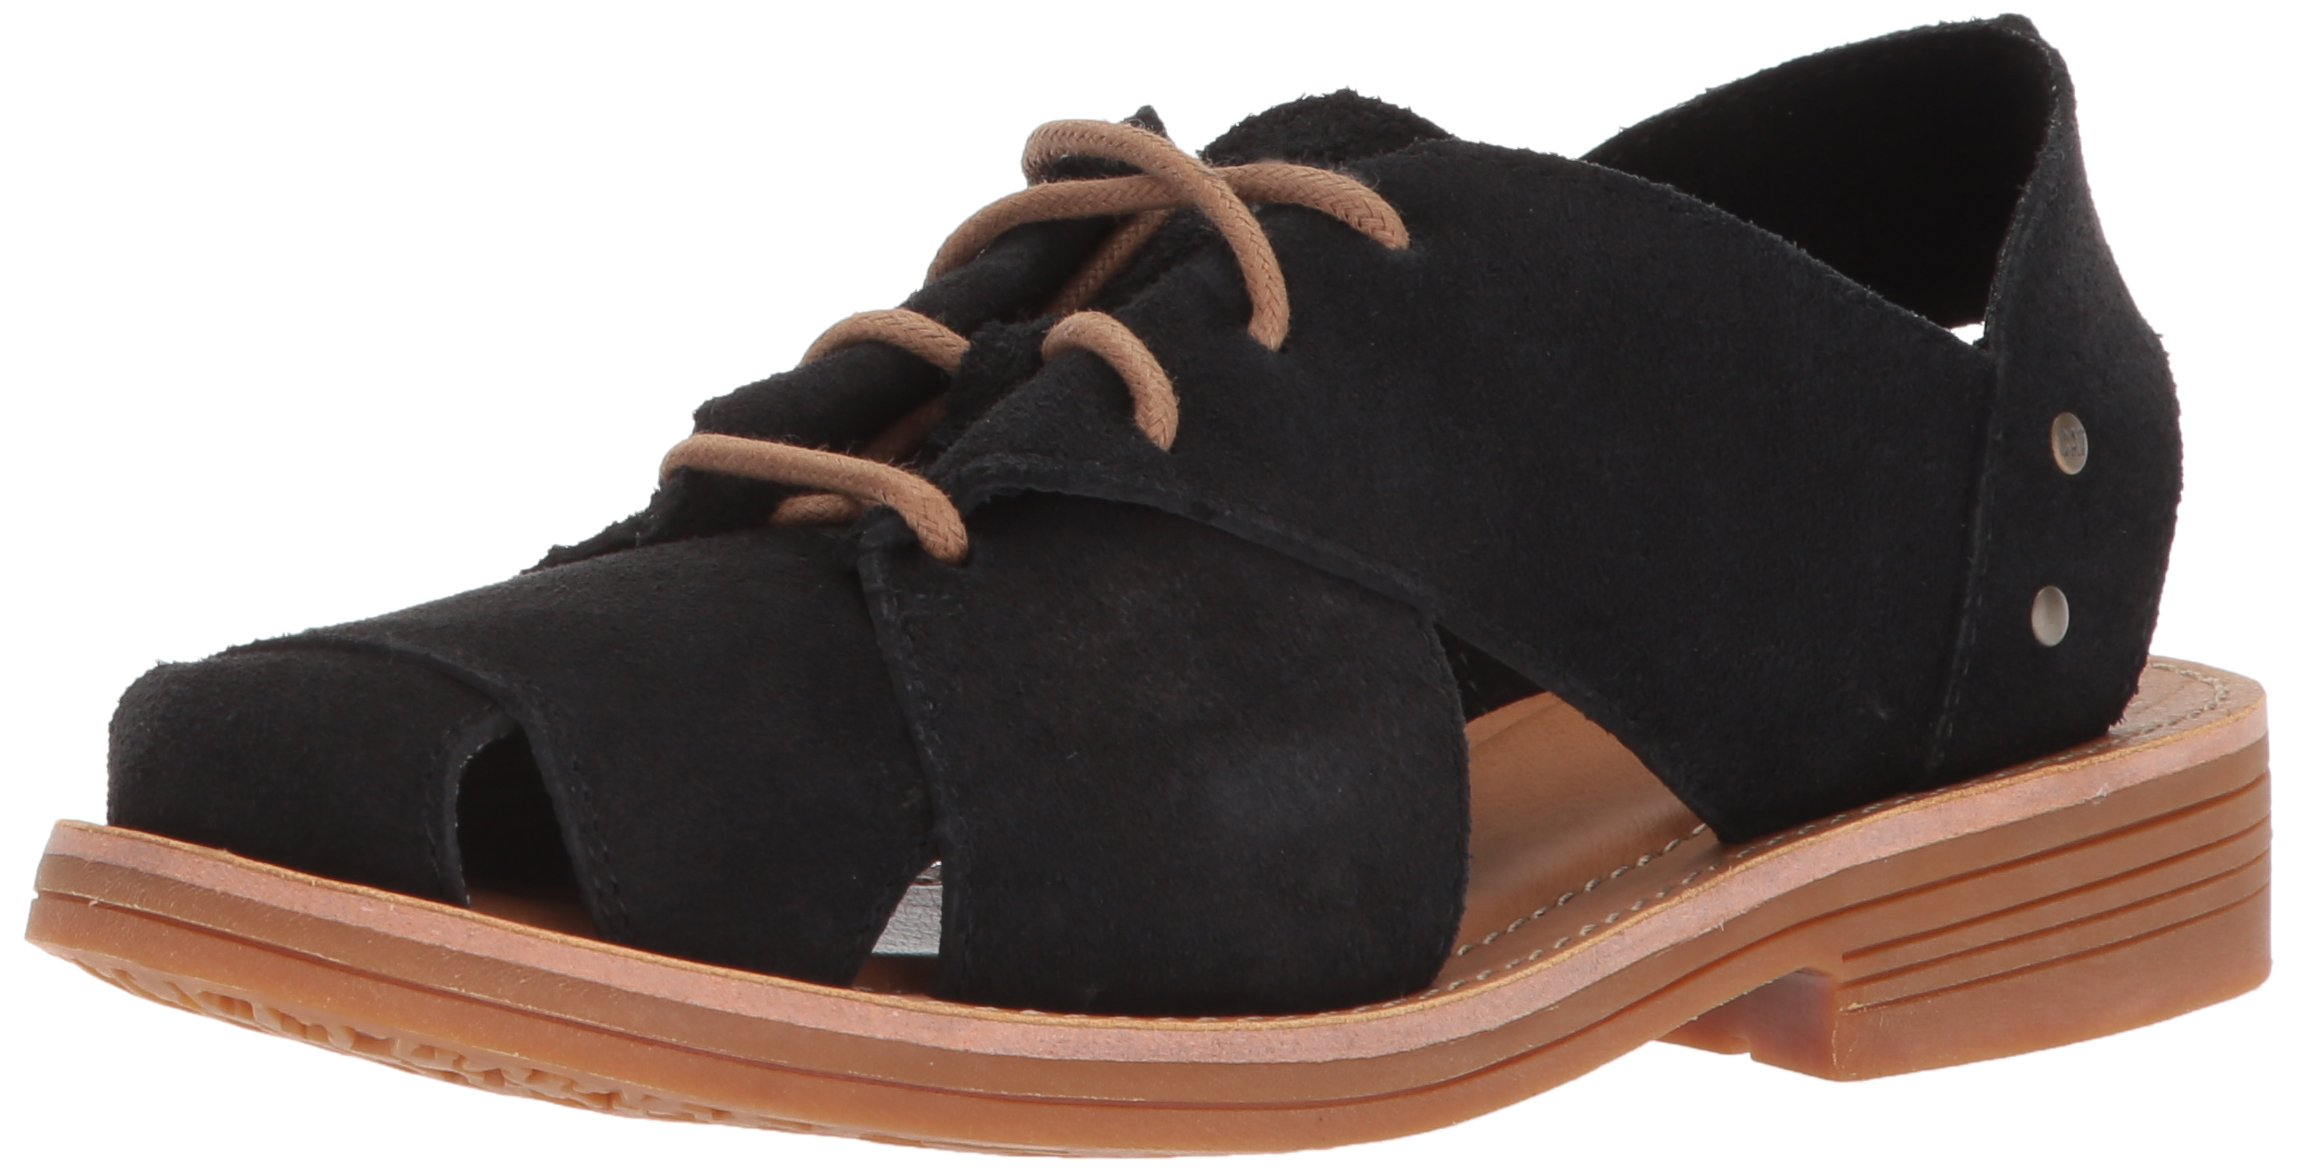 Caterpillar Women's Maren Unconstructed Leather Lace up Shoe With Cutouts Oxford, Black, 9.5 Medium US